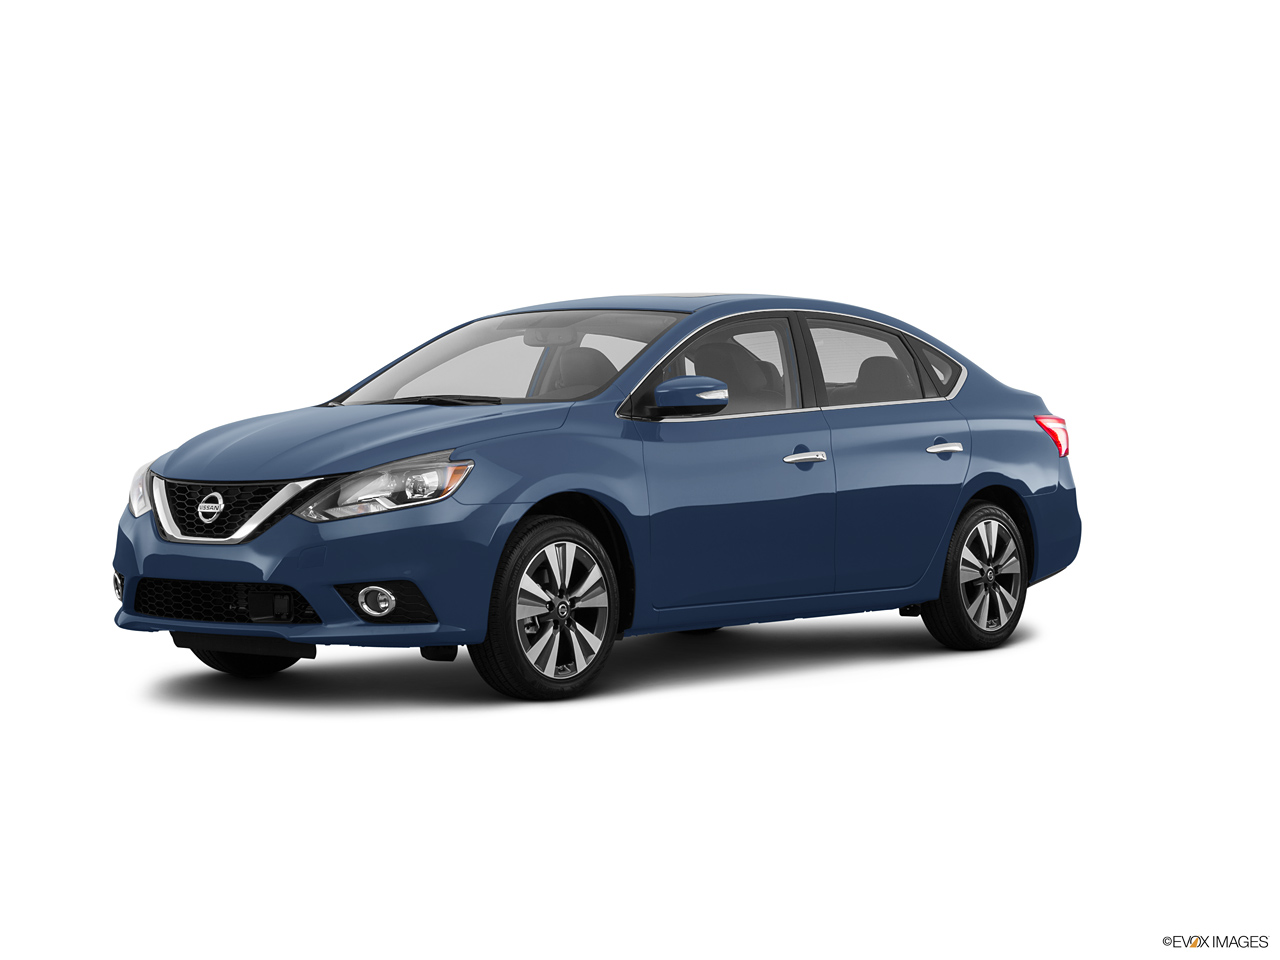 nissan sentra sv vs sr 2017 nissan sentra trim level comparison s vs sv vs 2016 nissan sentra. Black Bedroom Furniture Sets. Home Design Ideas